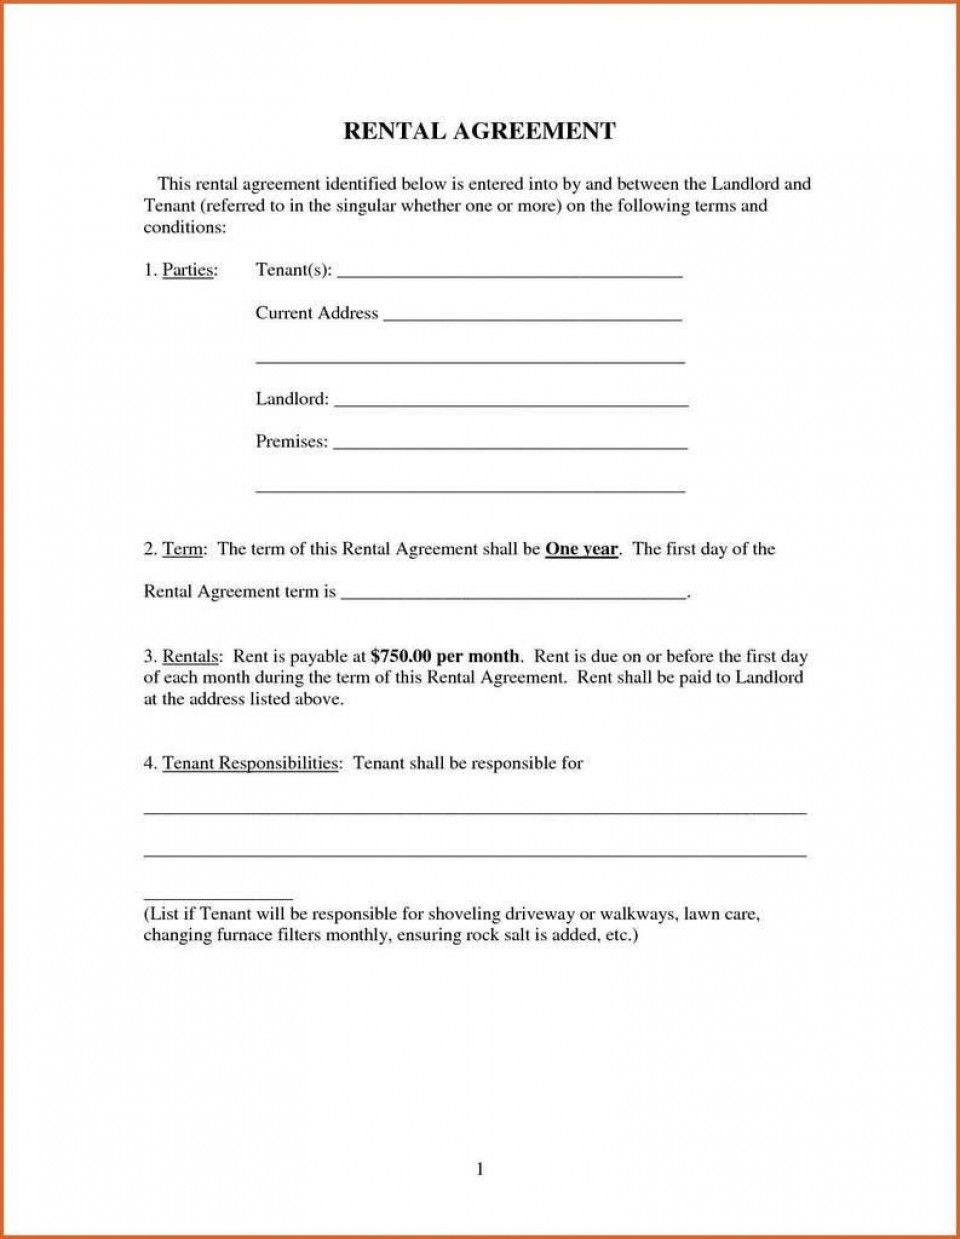 009 Imposing Renter Lease Agreement Form High Definition  Rent Format In Tamil Florida Rental Printable960